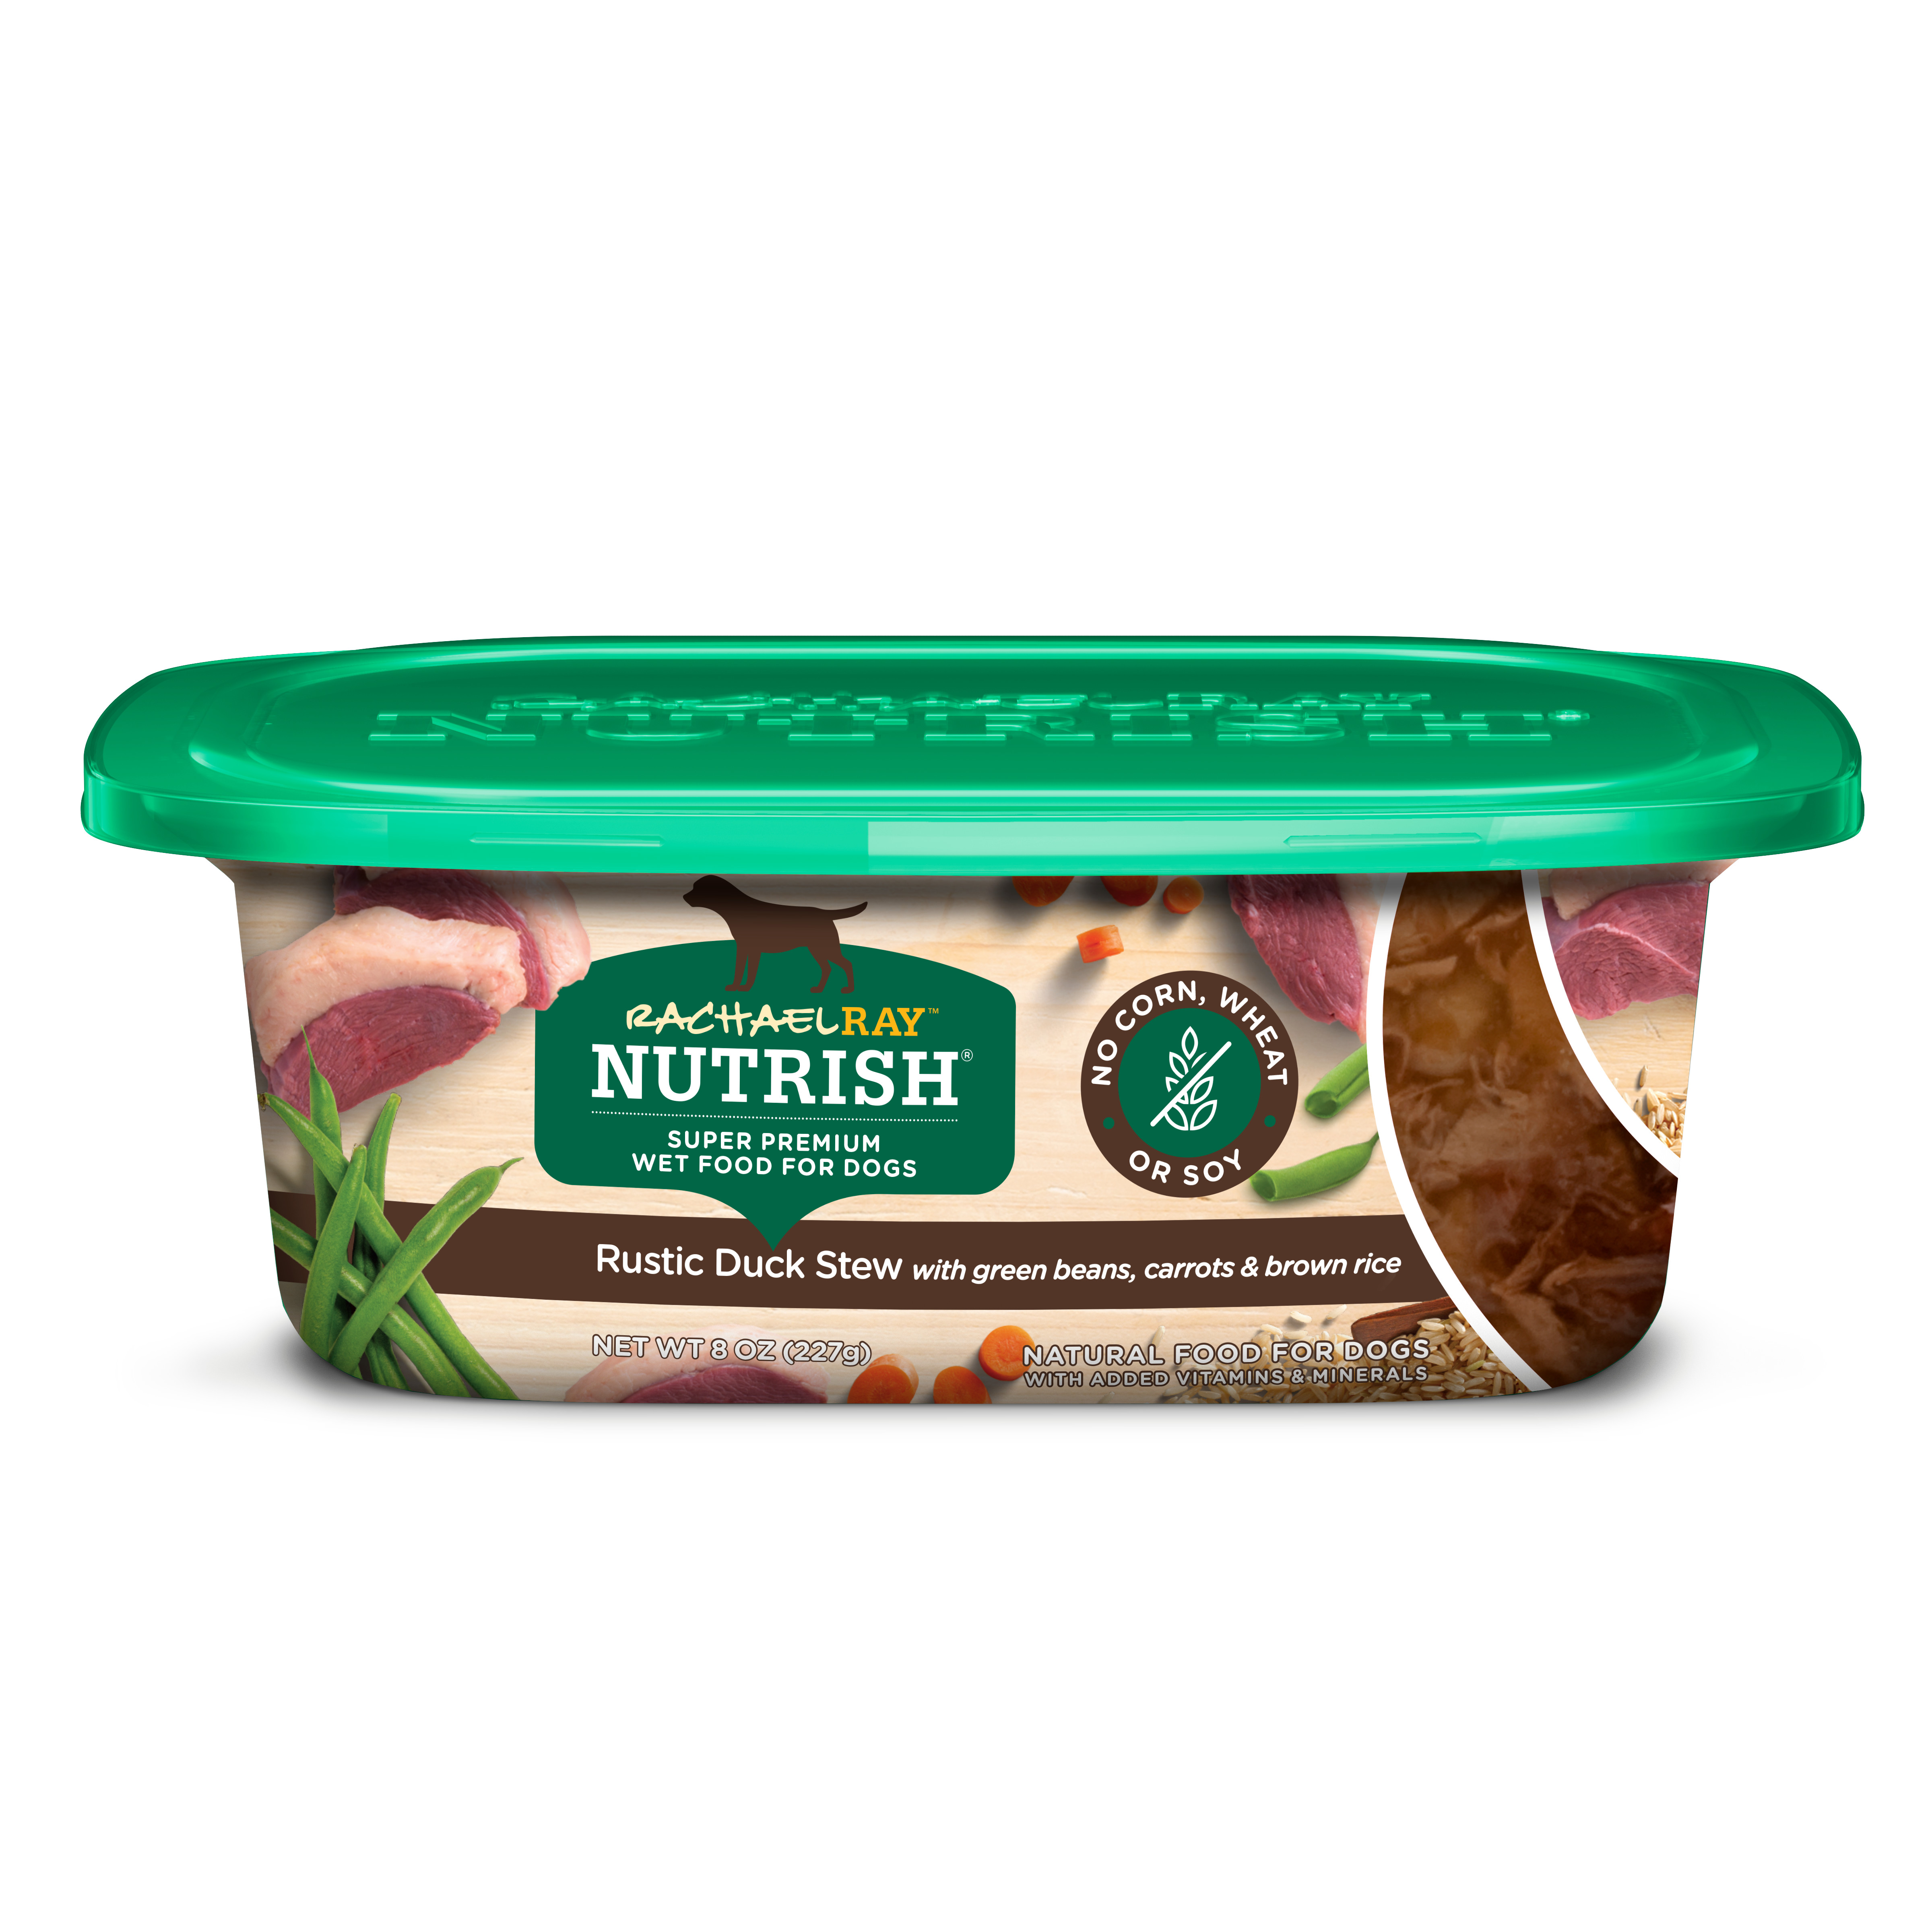 (8 Pack) Rachael Ray Nutrish Natural Wet Dog Food, Rustic Duck Stew with Green Beans, Carrots & Brown Rice 8 oz tub